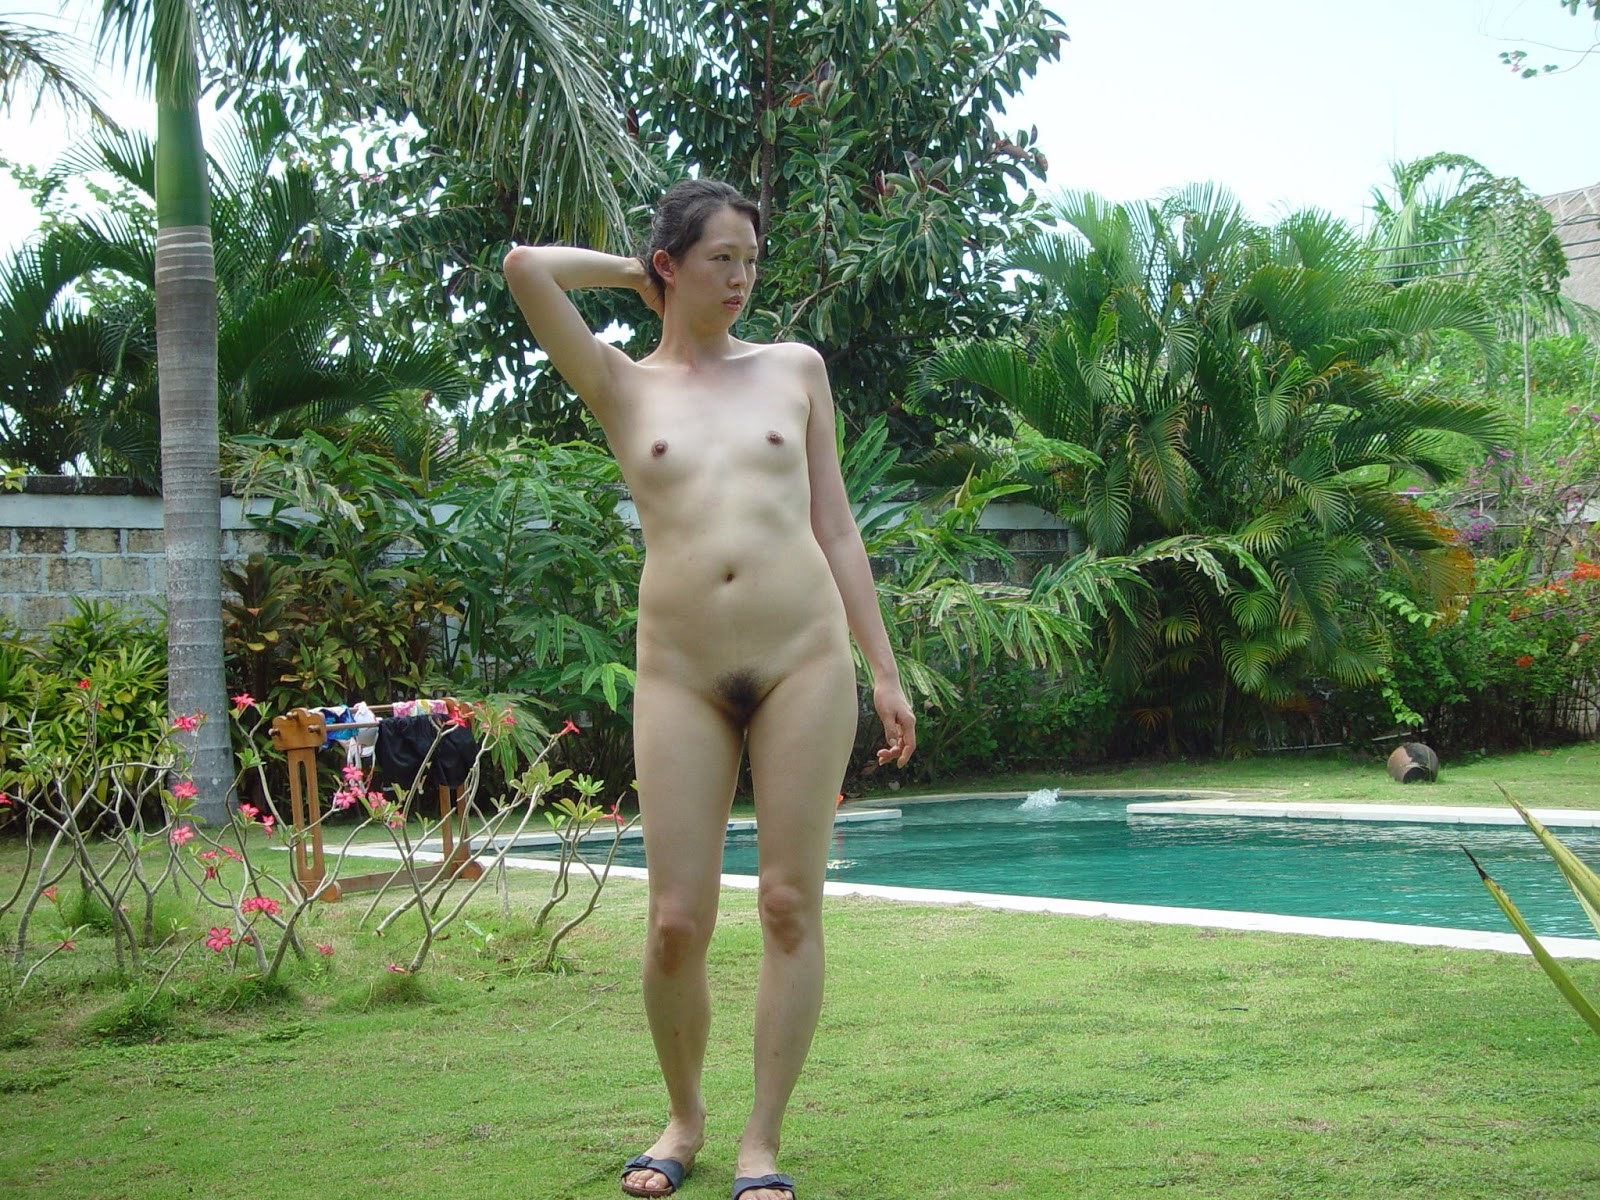 My korea wife nude was